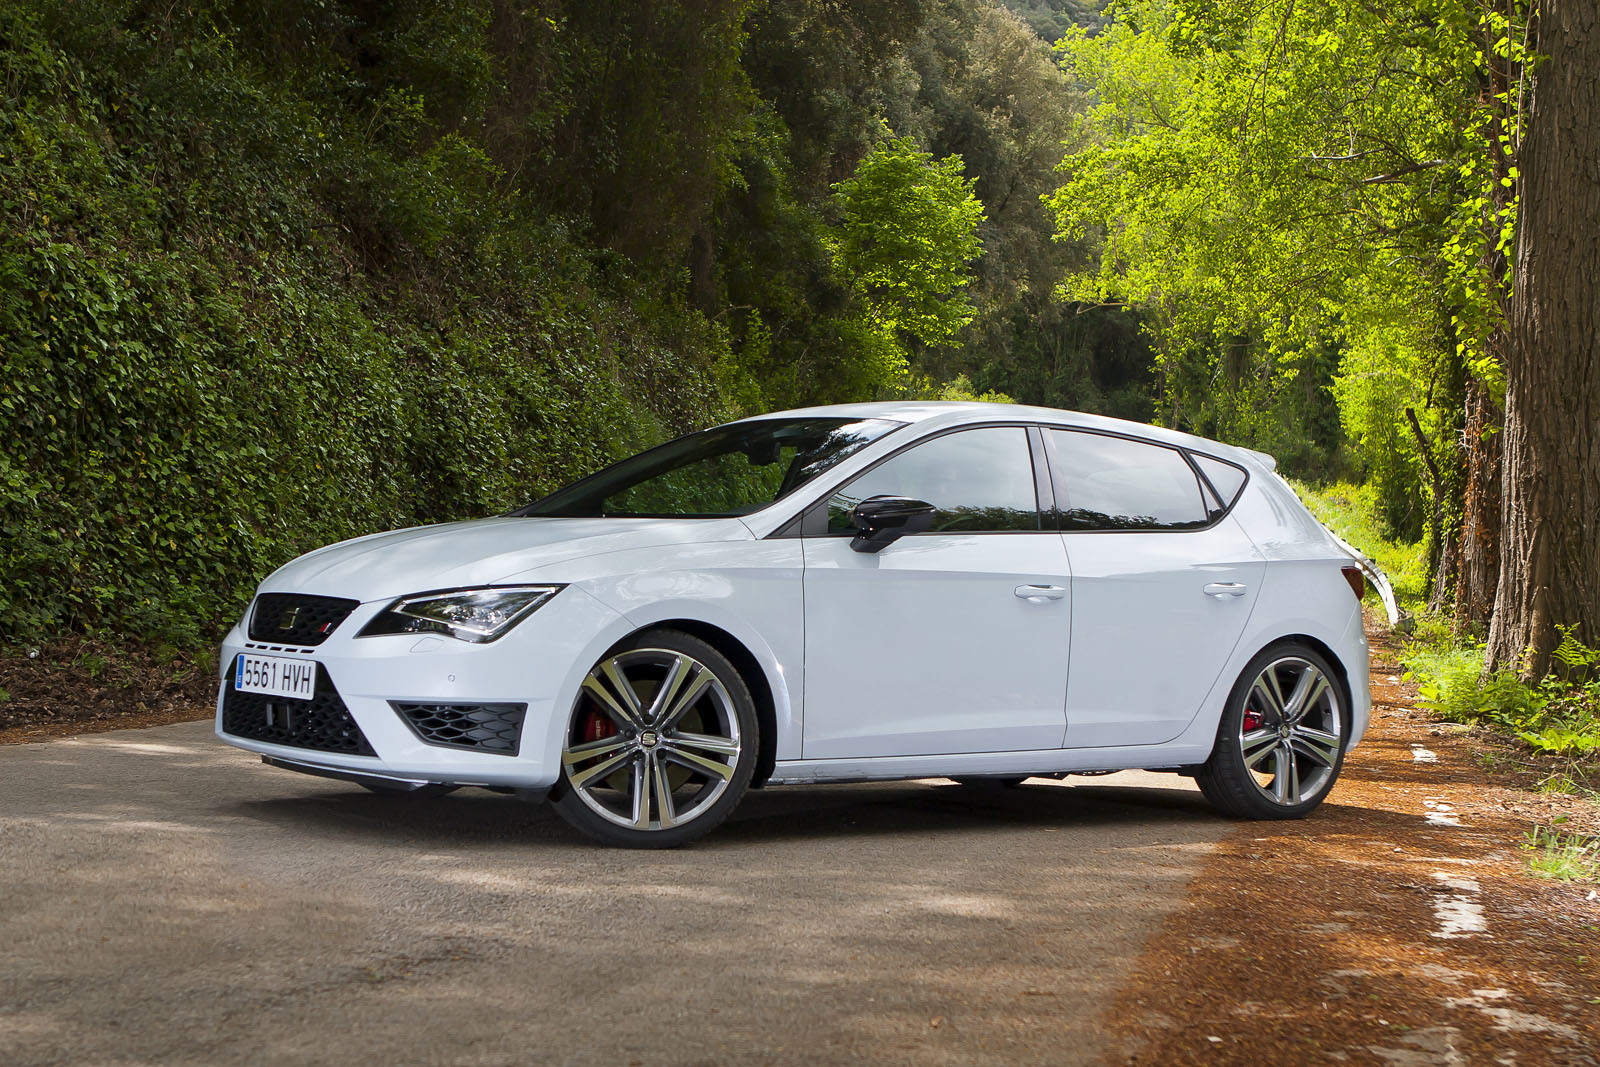 seat leon mk3 pictures forums. Black Bedroom Furniture Sets. Home Design Ideas